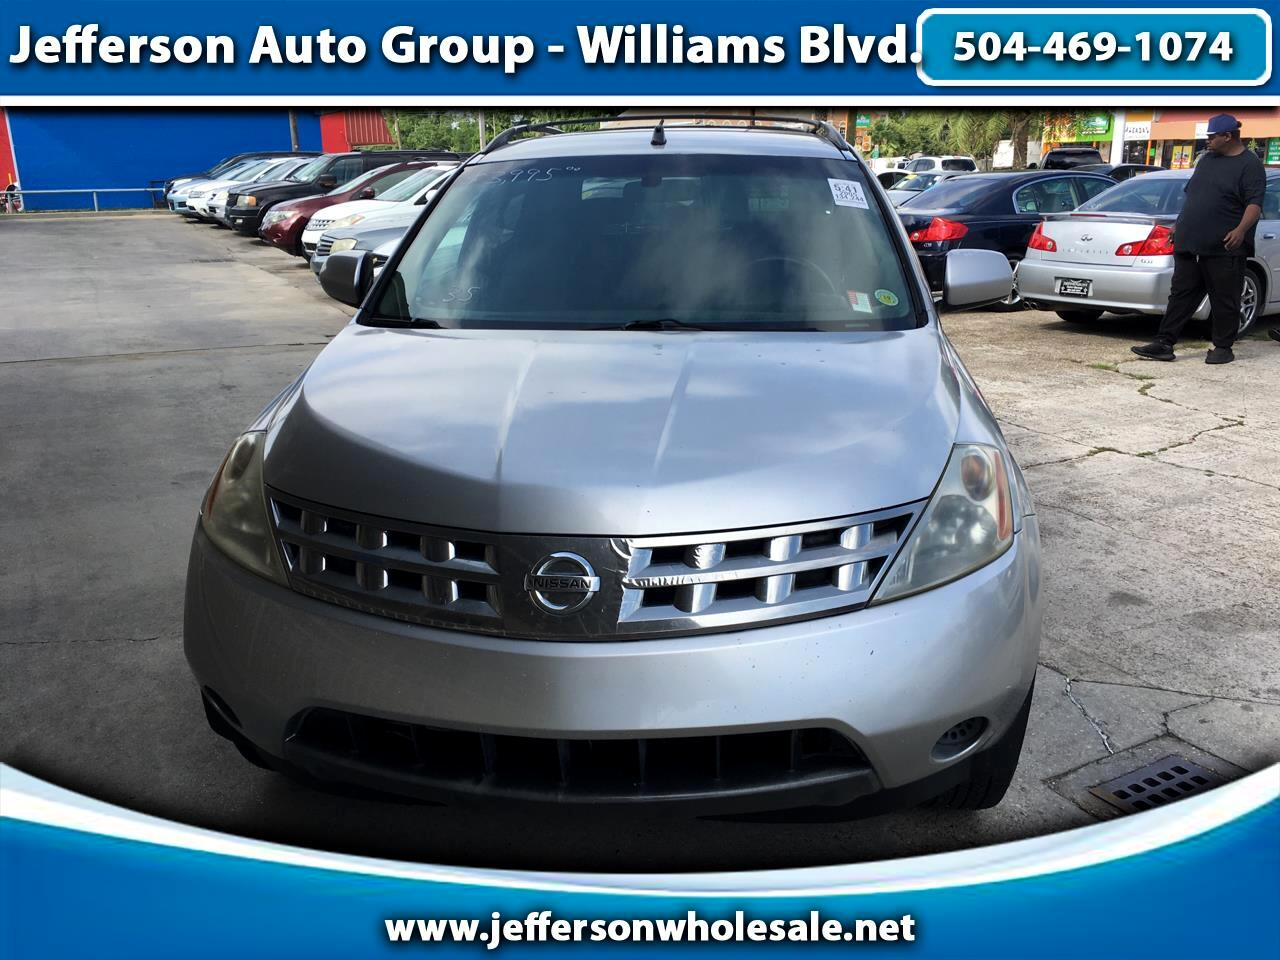 2005 Nissan Murano 4dr SL FWD V6